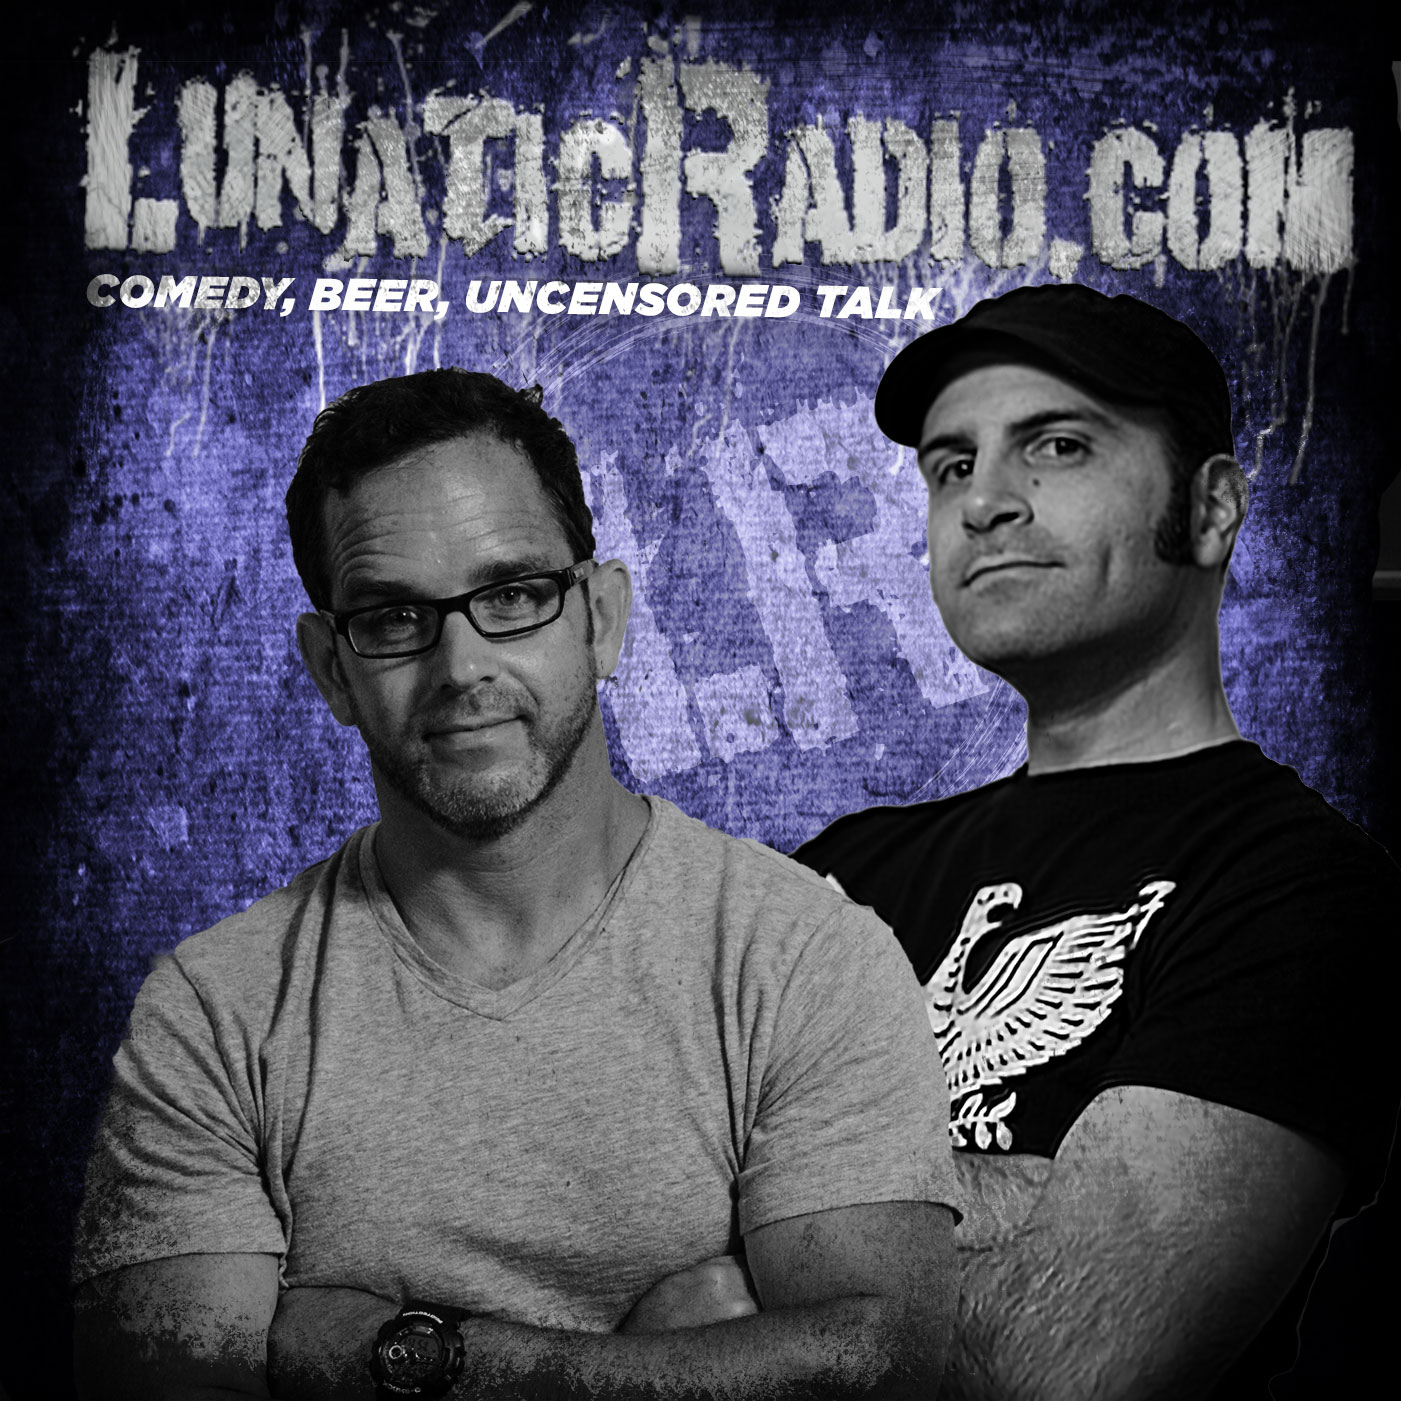 The LunaticRadio.com Show